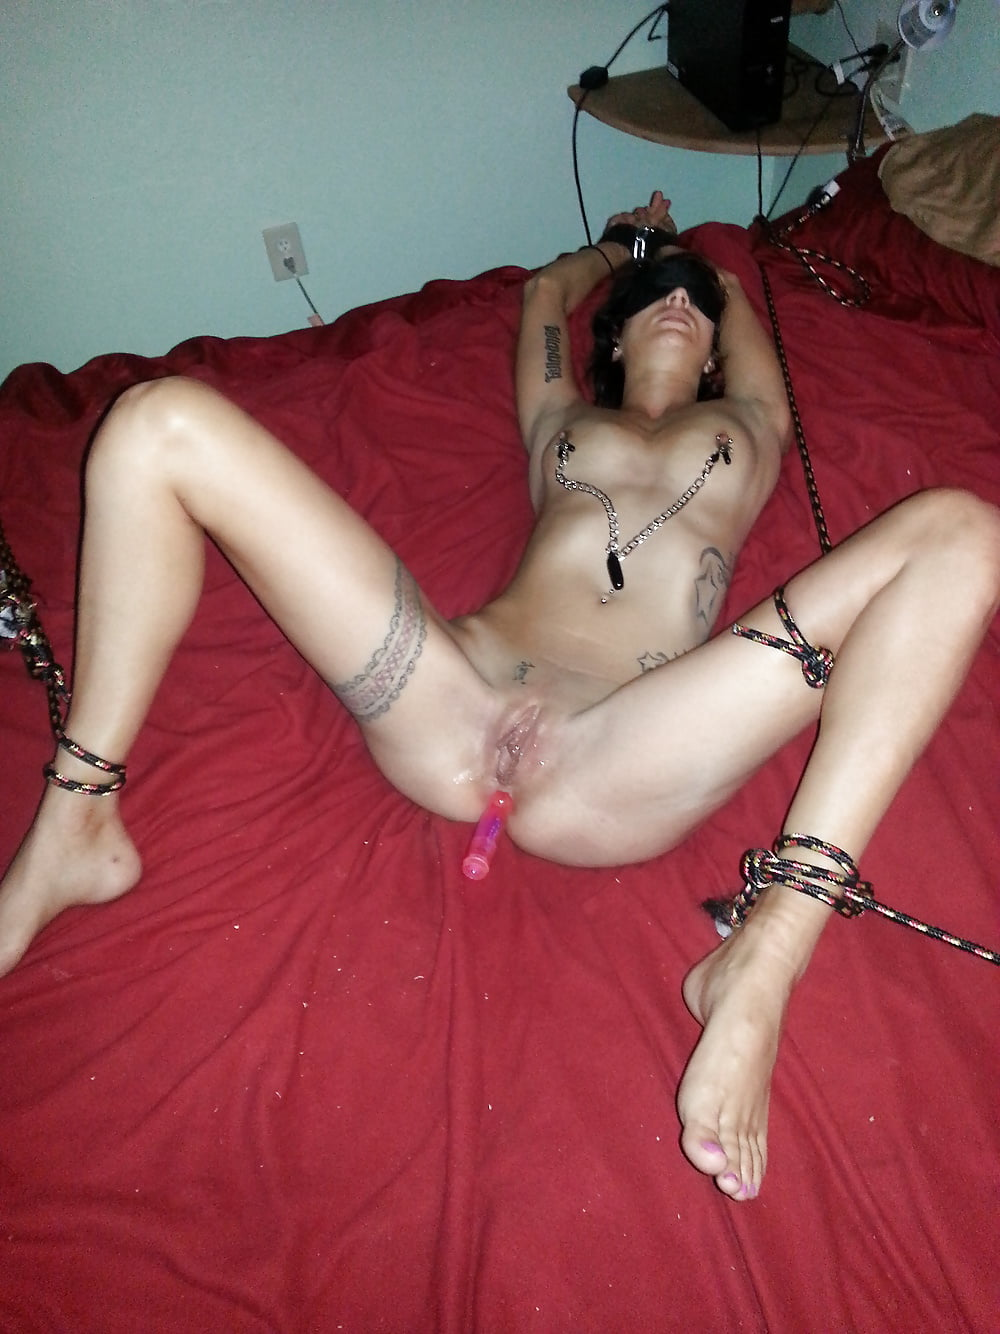 Amateur bondage vids bunnies naked